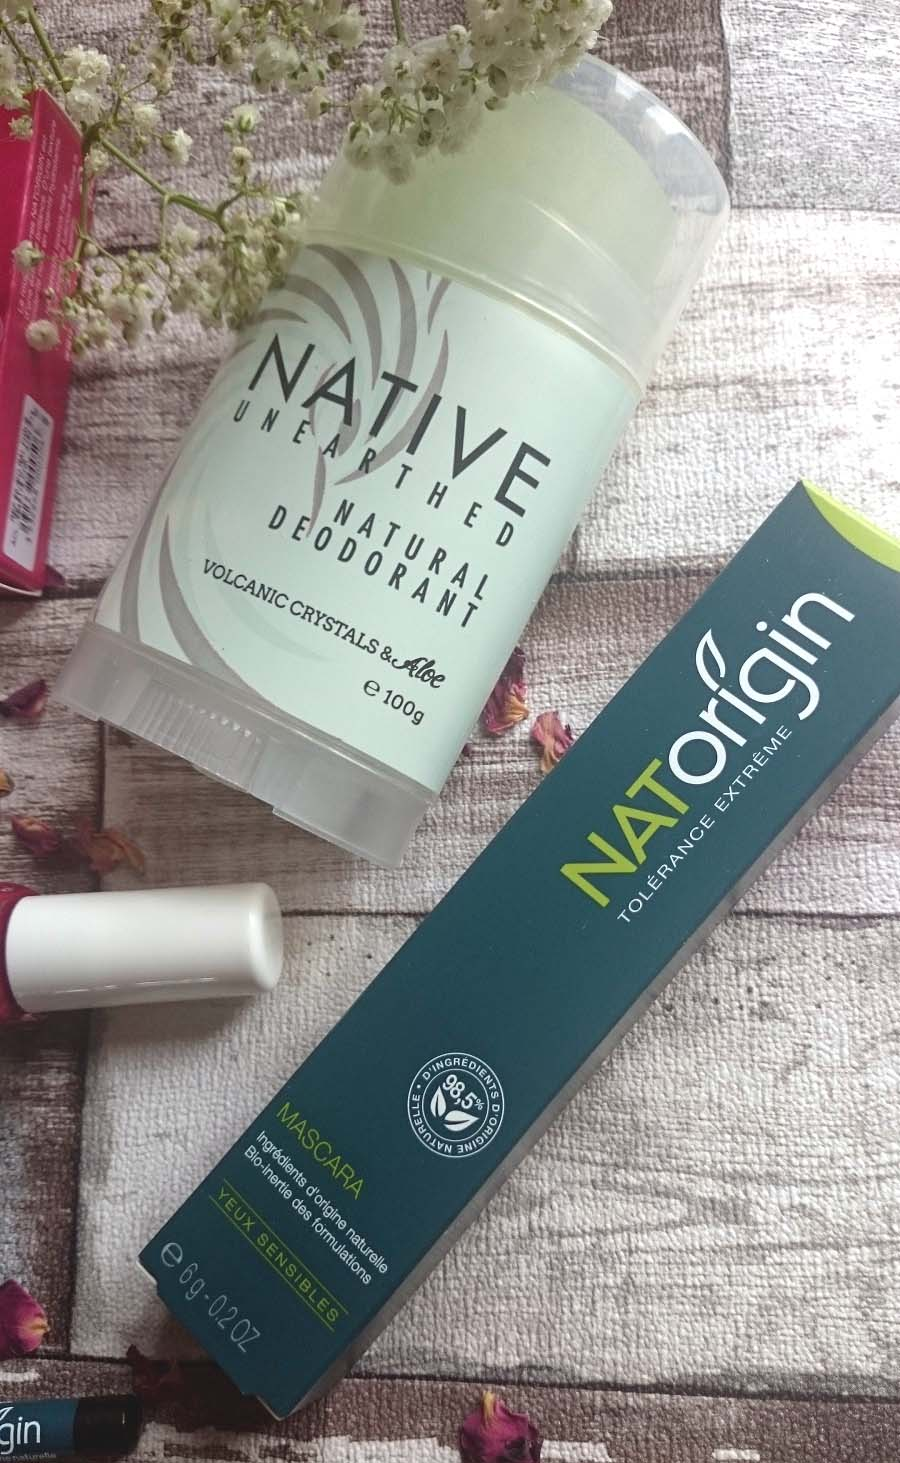 Allergy UK, Allergy Awareness, Natorigin, Native Unearthed volcanic deodorant, beauty blog review